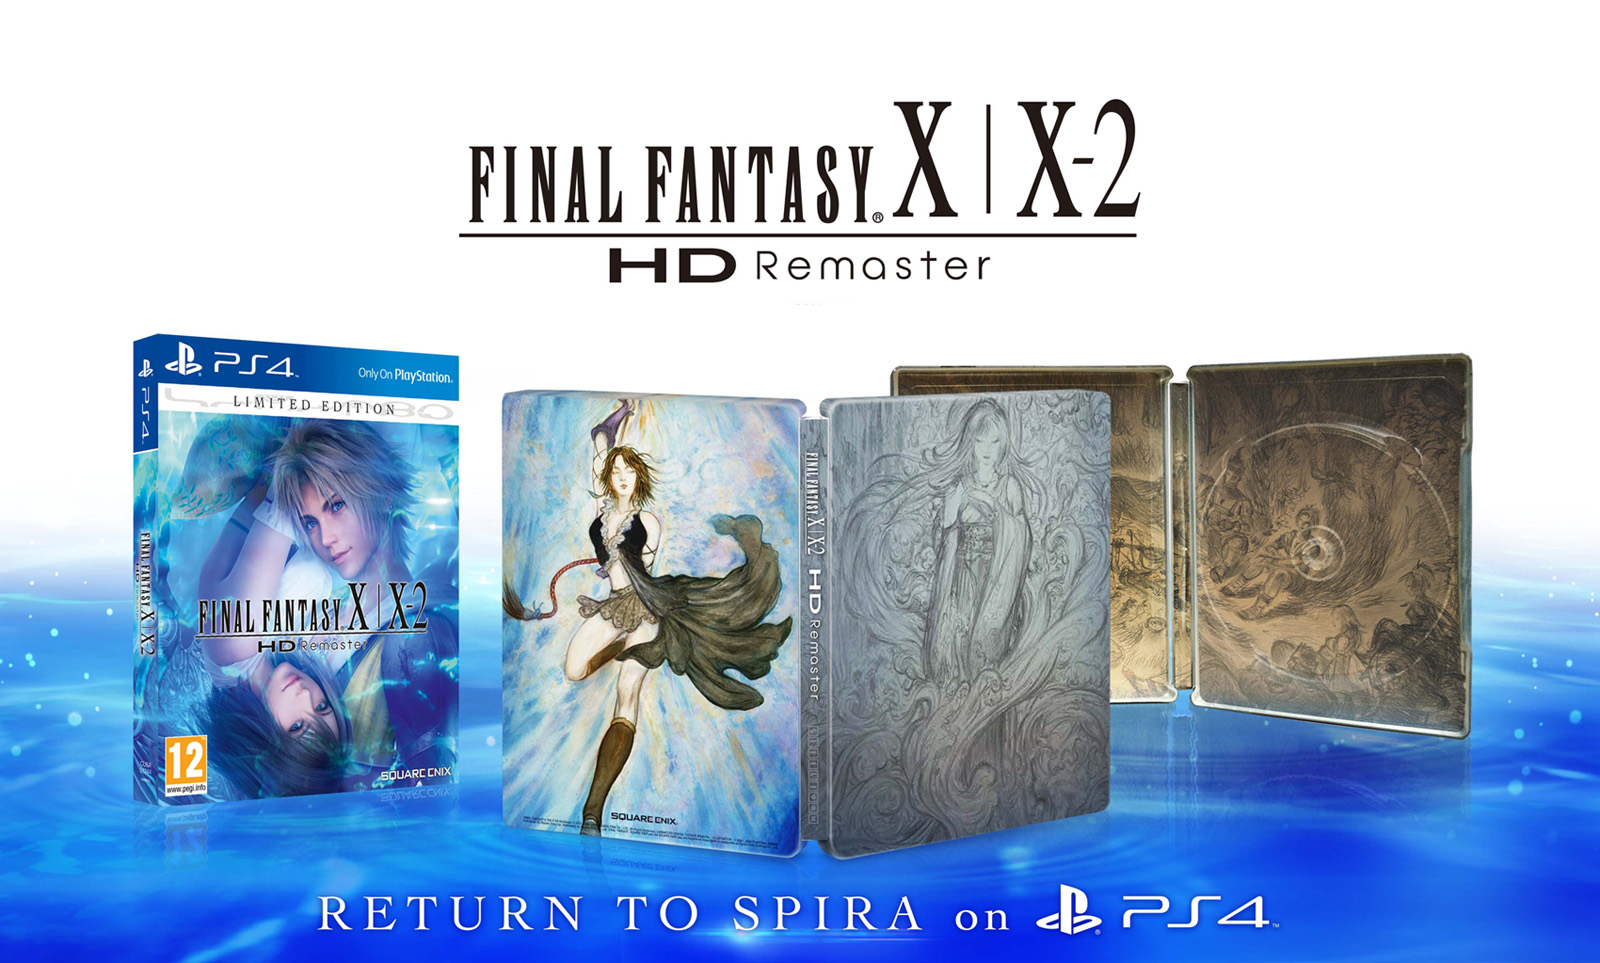 FFX HD Remaster Limited Edition Artework